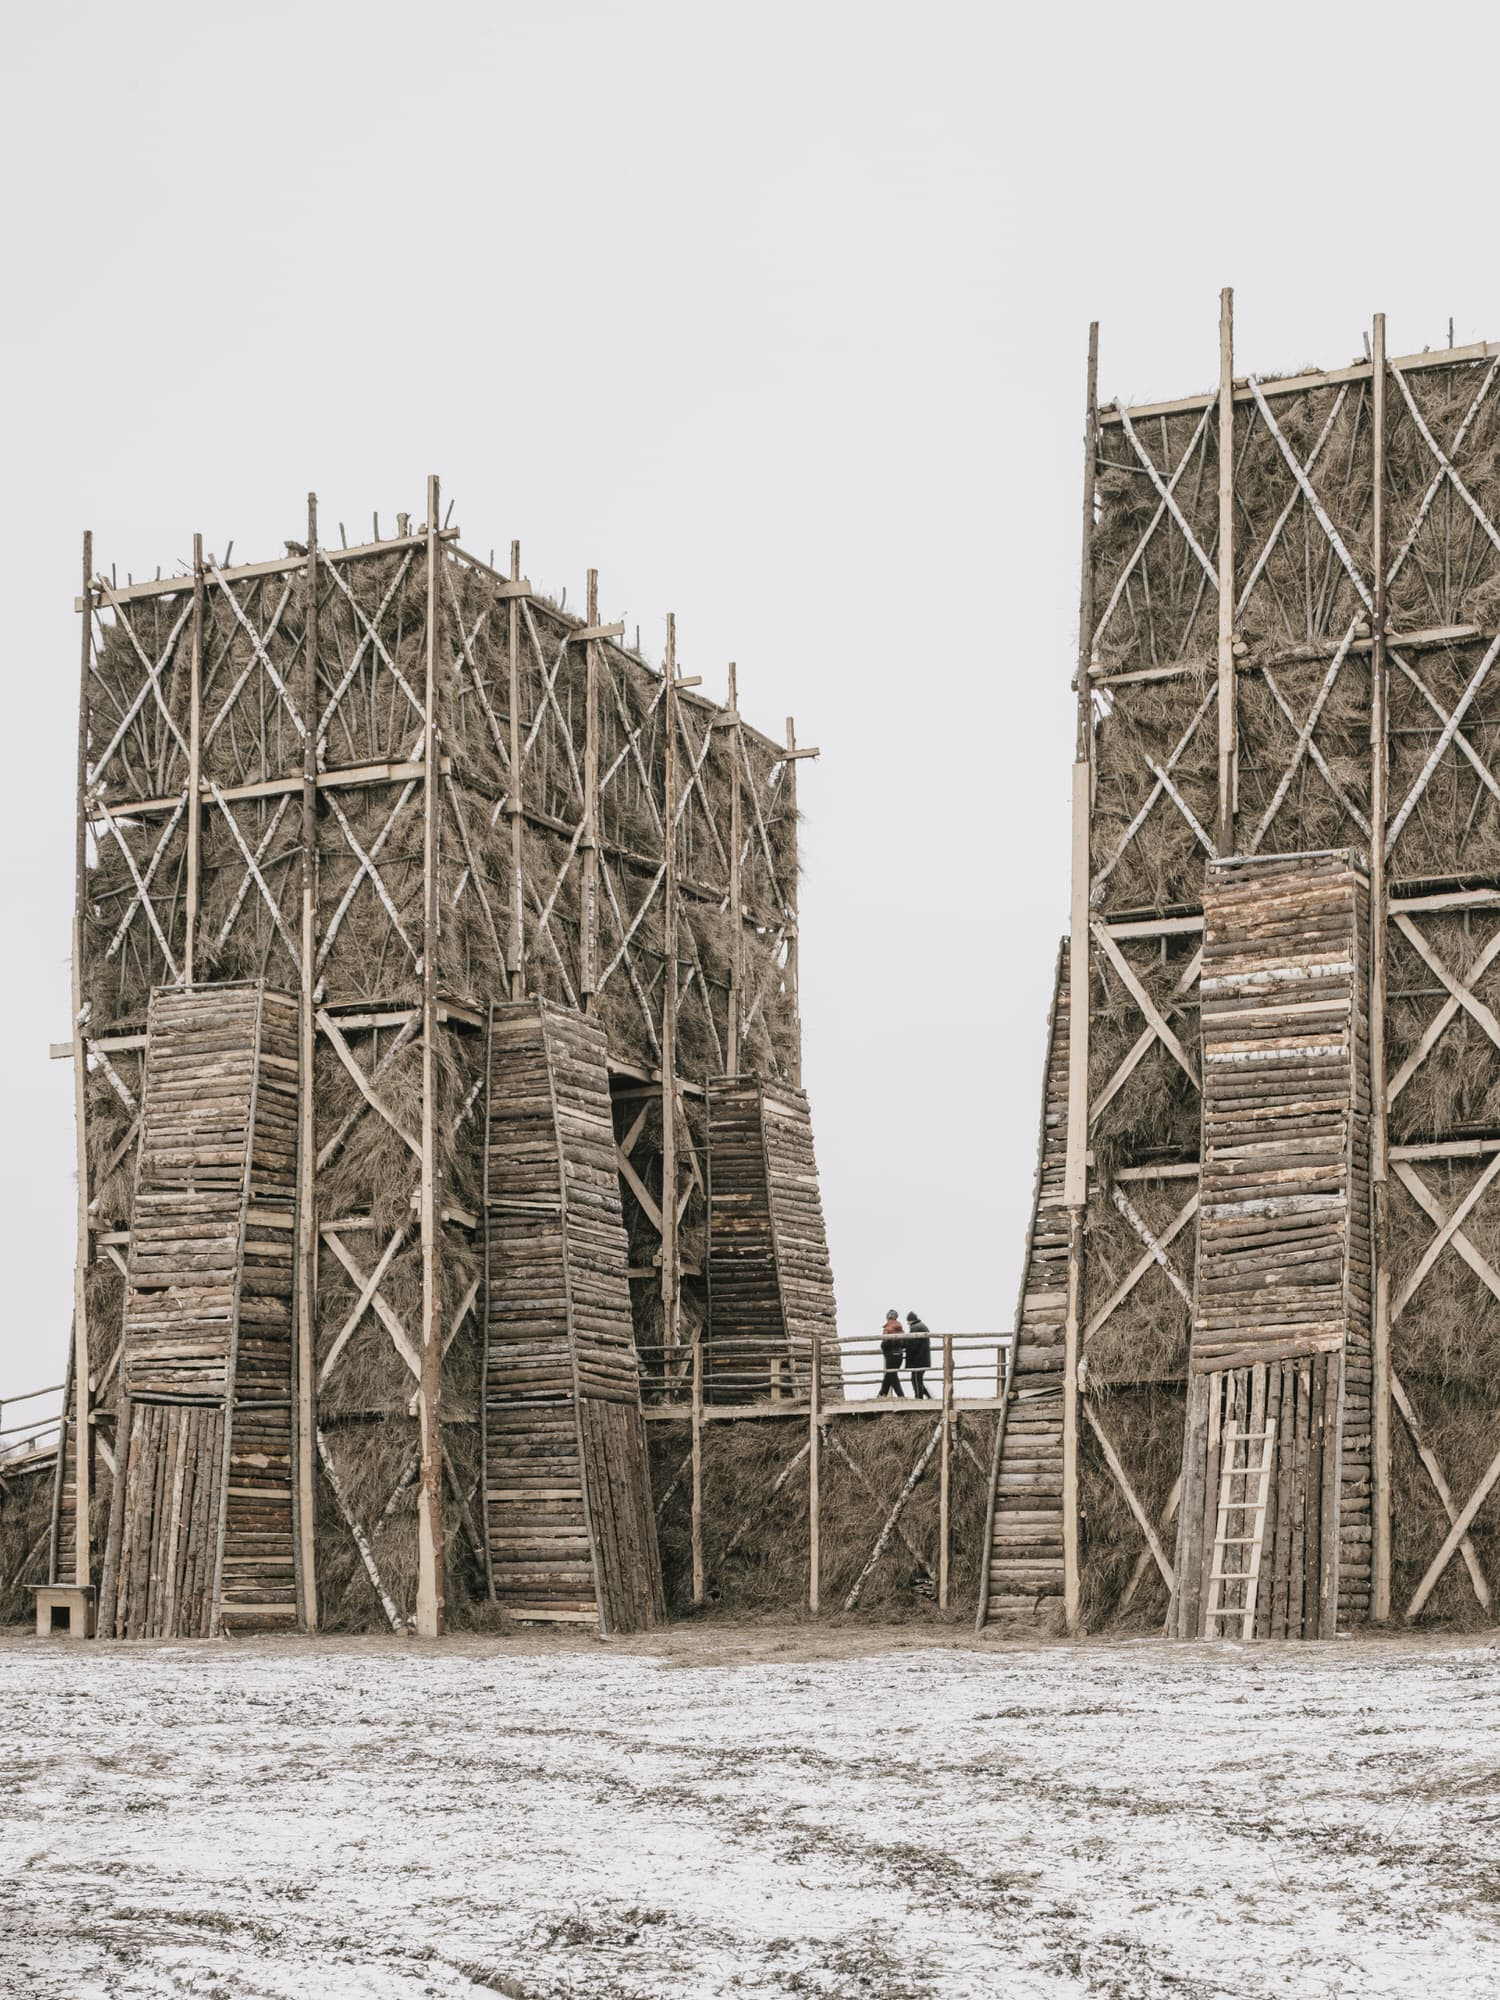 Burning Bridges Installation in a Small Russian Village by KATARSIS.